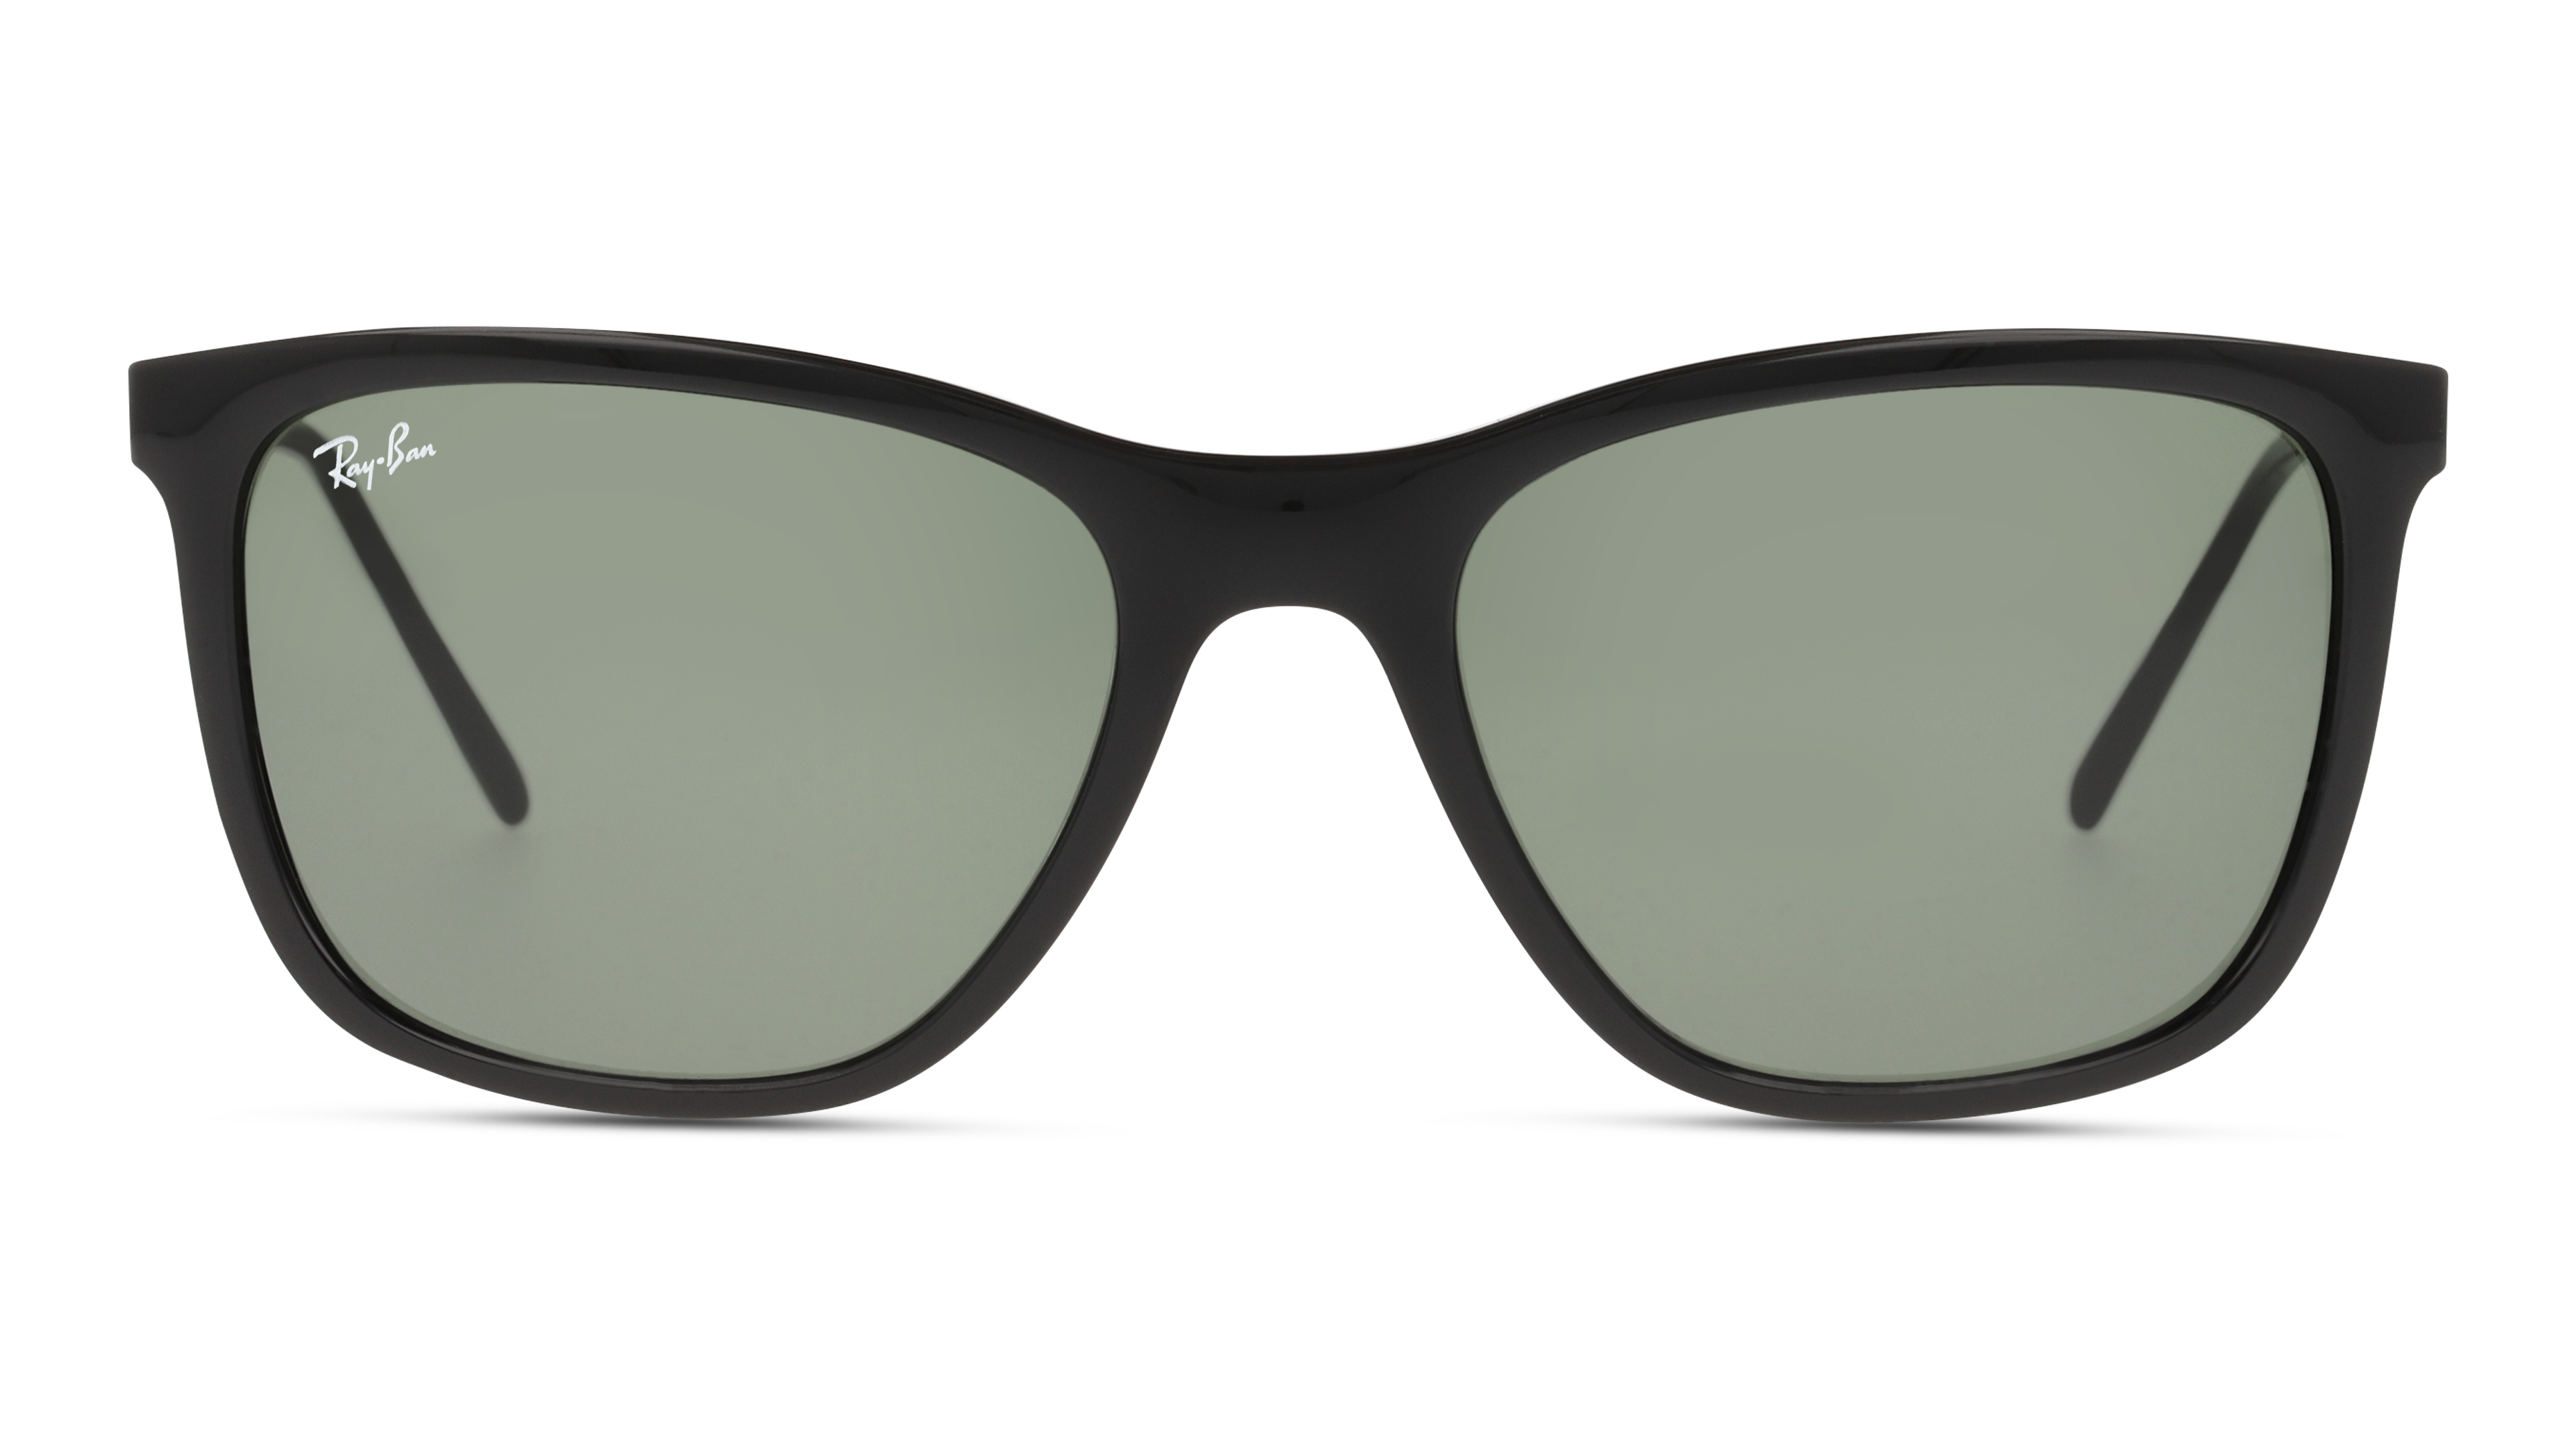 Front Ray-Ban 0RB4344/601/31/5619/140 Sort